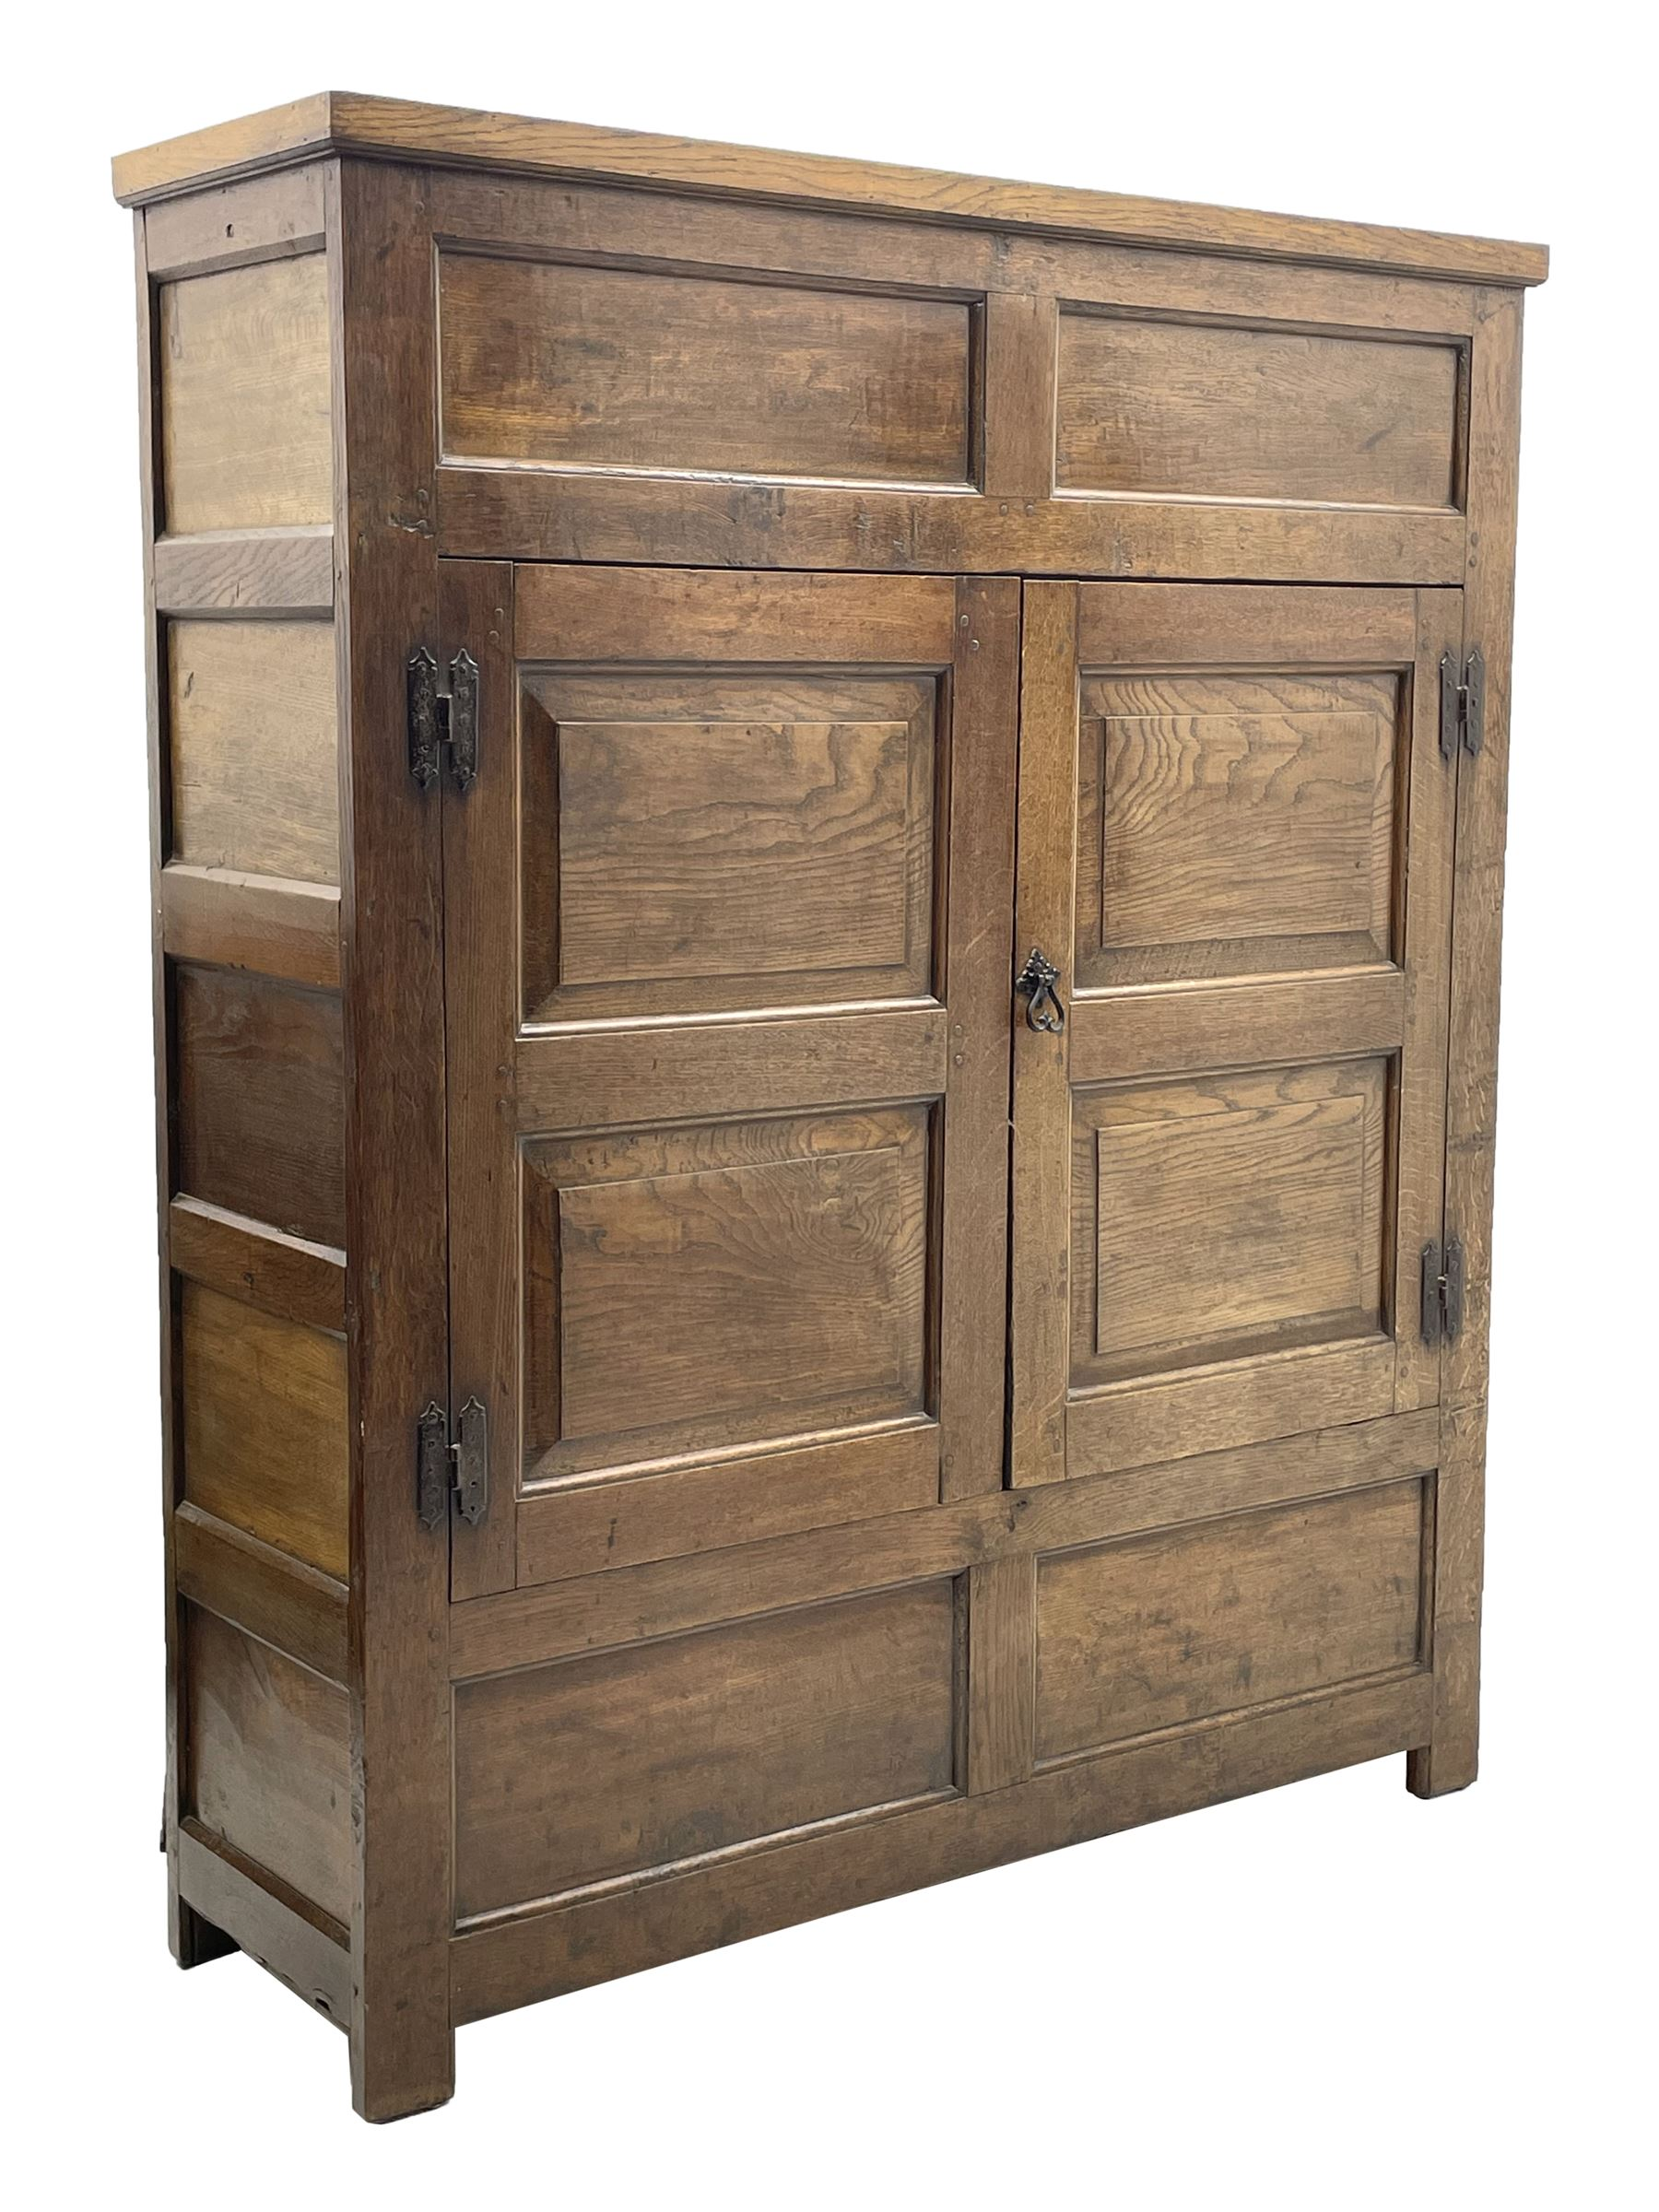 18th century and later oak livery cupboard